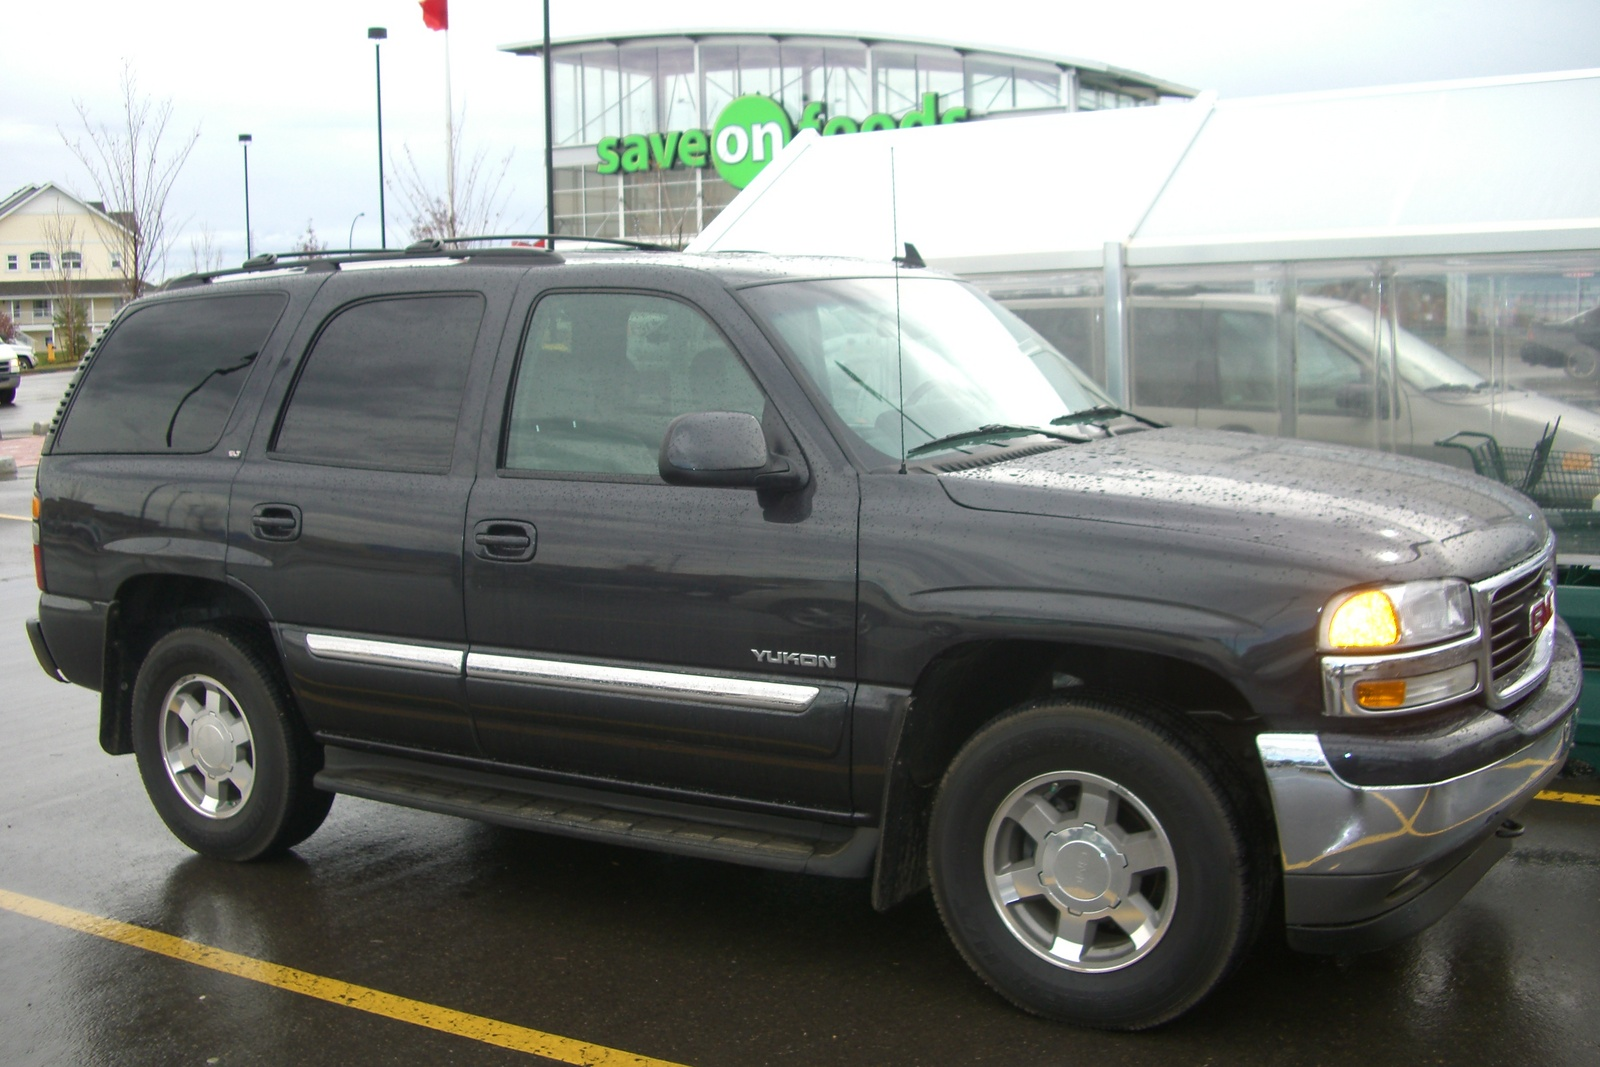 2006 gmc yukon information and photos zombiedrive 2006 gmc yukon 24 gmc yukon 24 sciox Choice Image